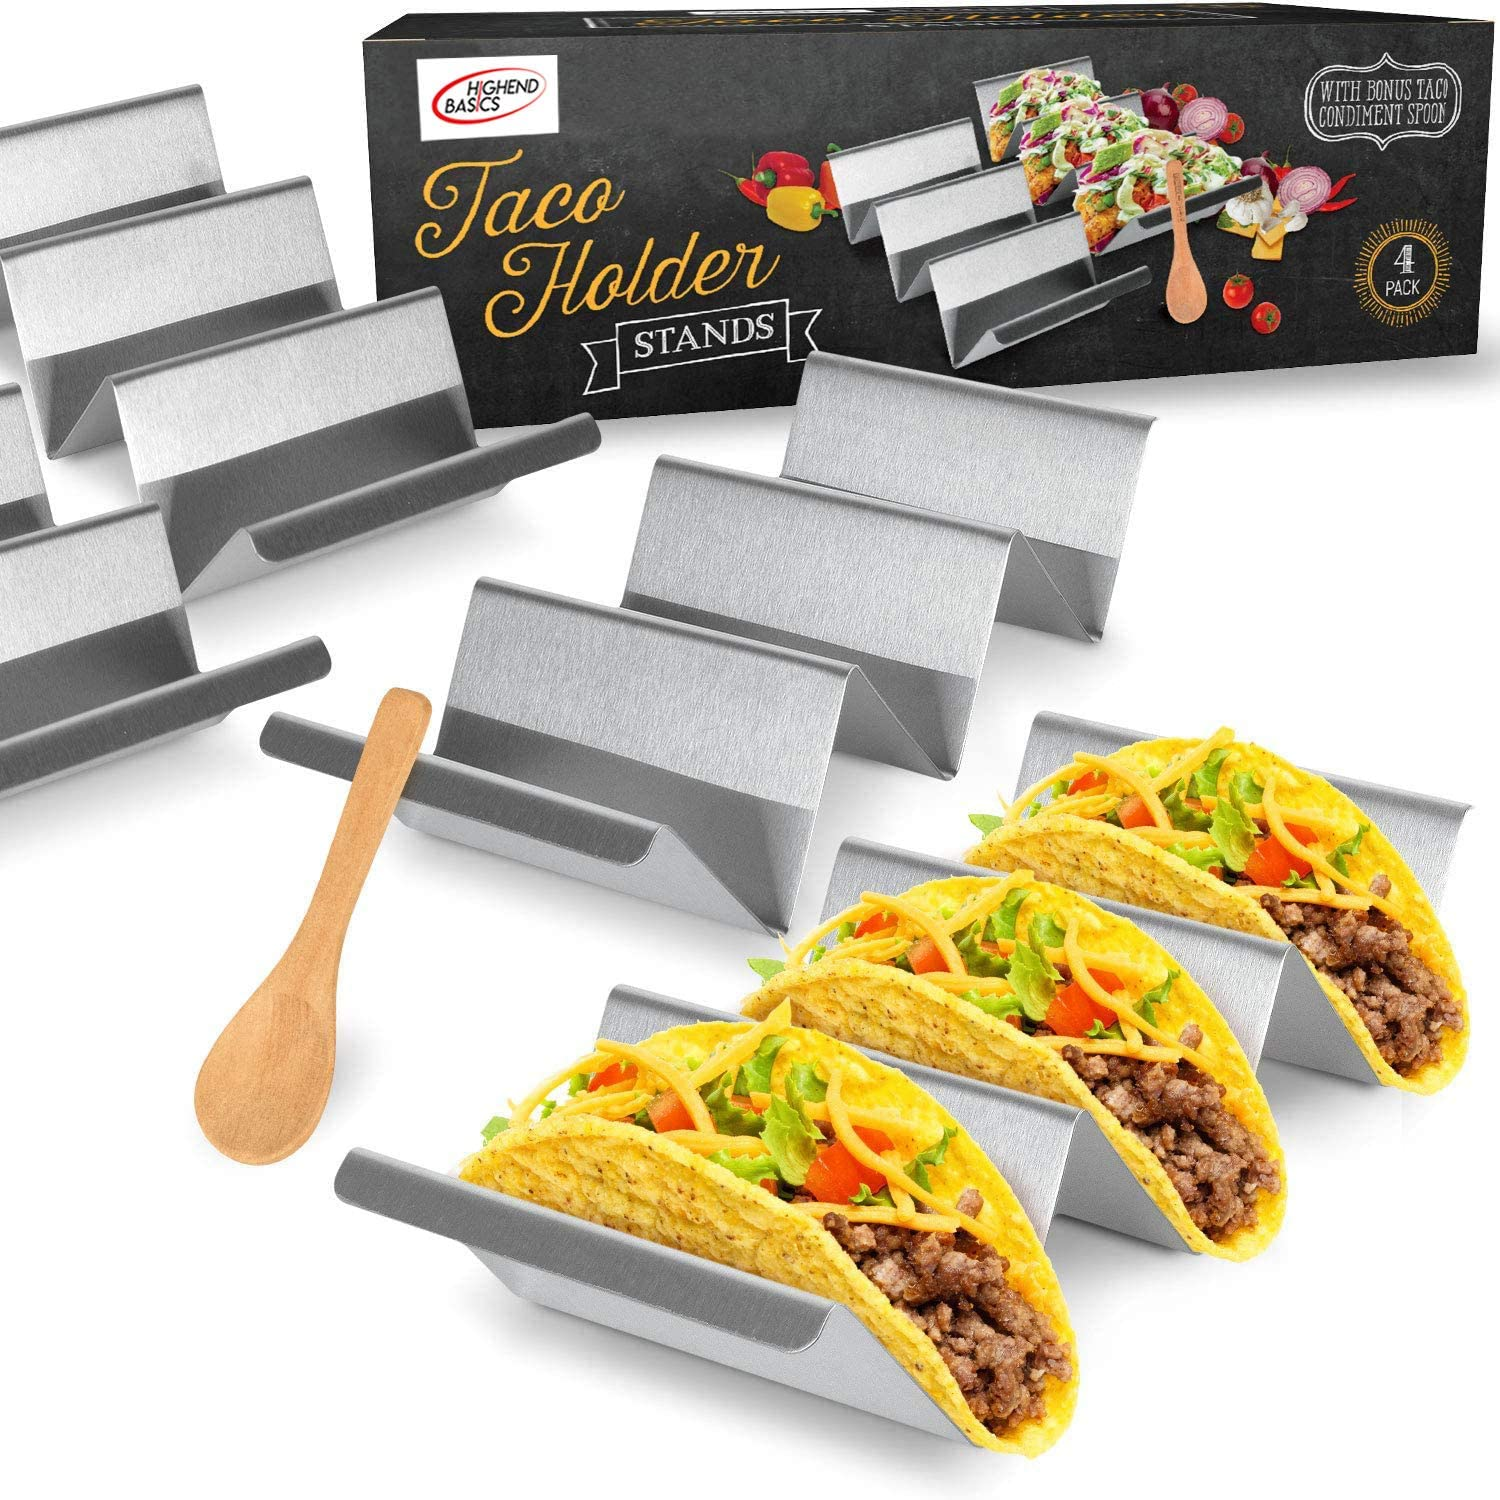 Highend Basics 4 Pack Heavy Duty Taco Holder Stands w/Handles and Serving Spoon - Dishwasher & Oven Safe